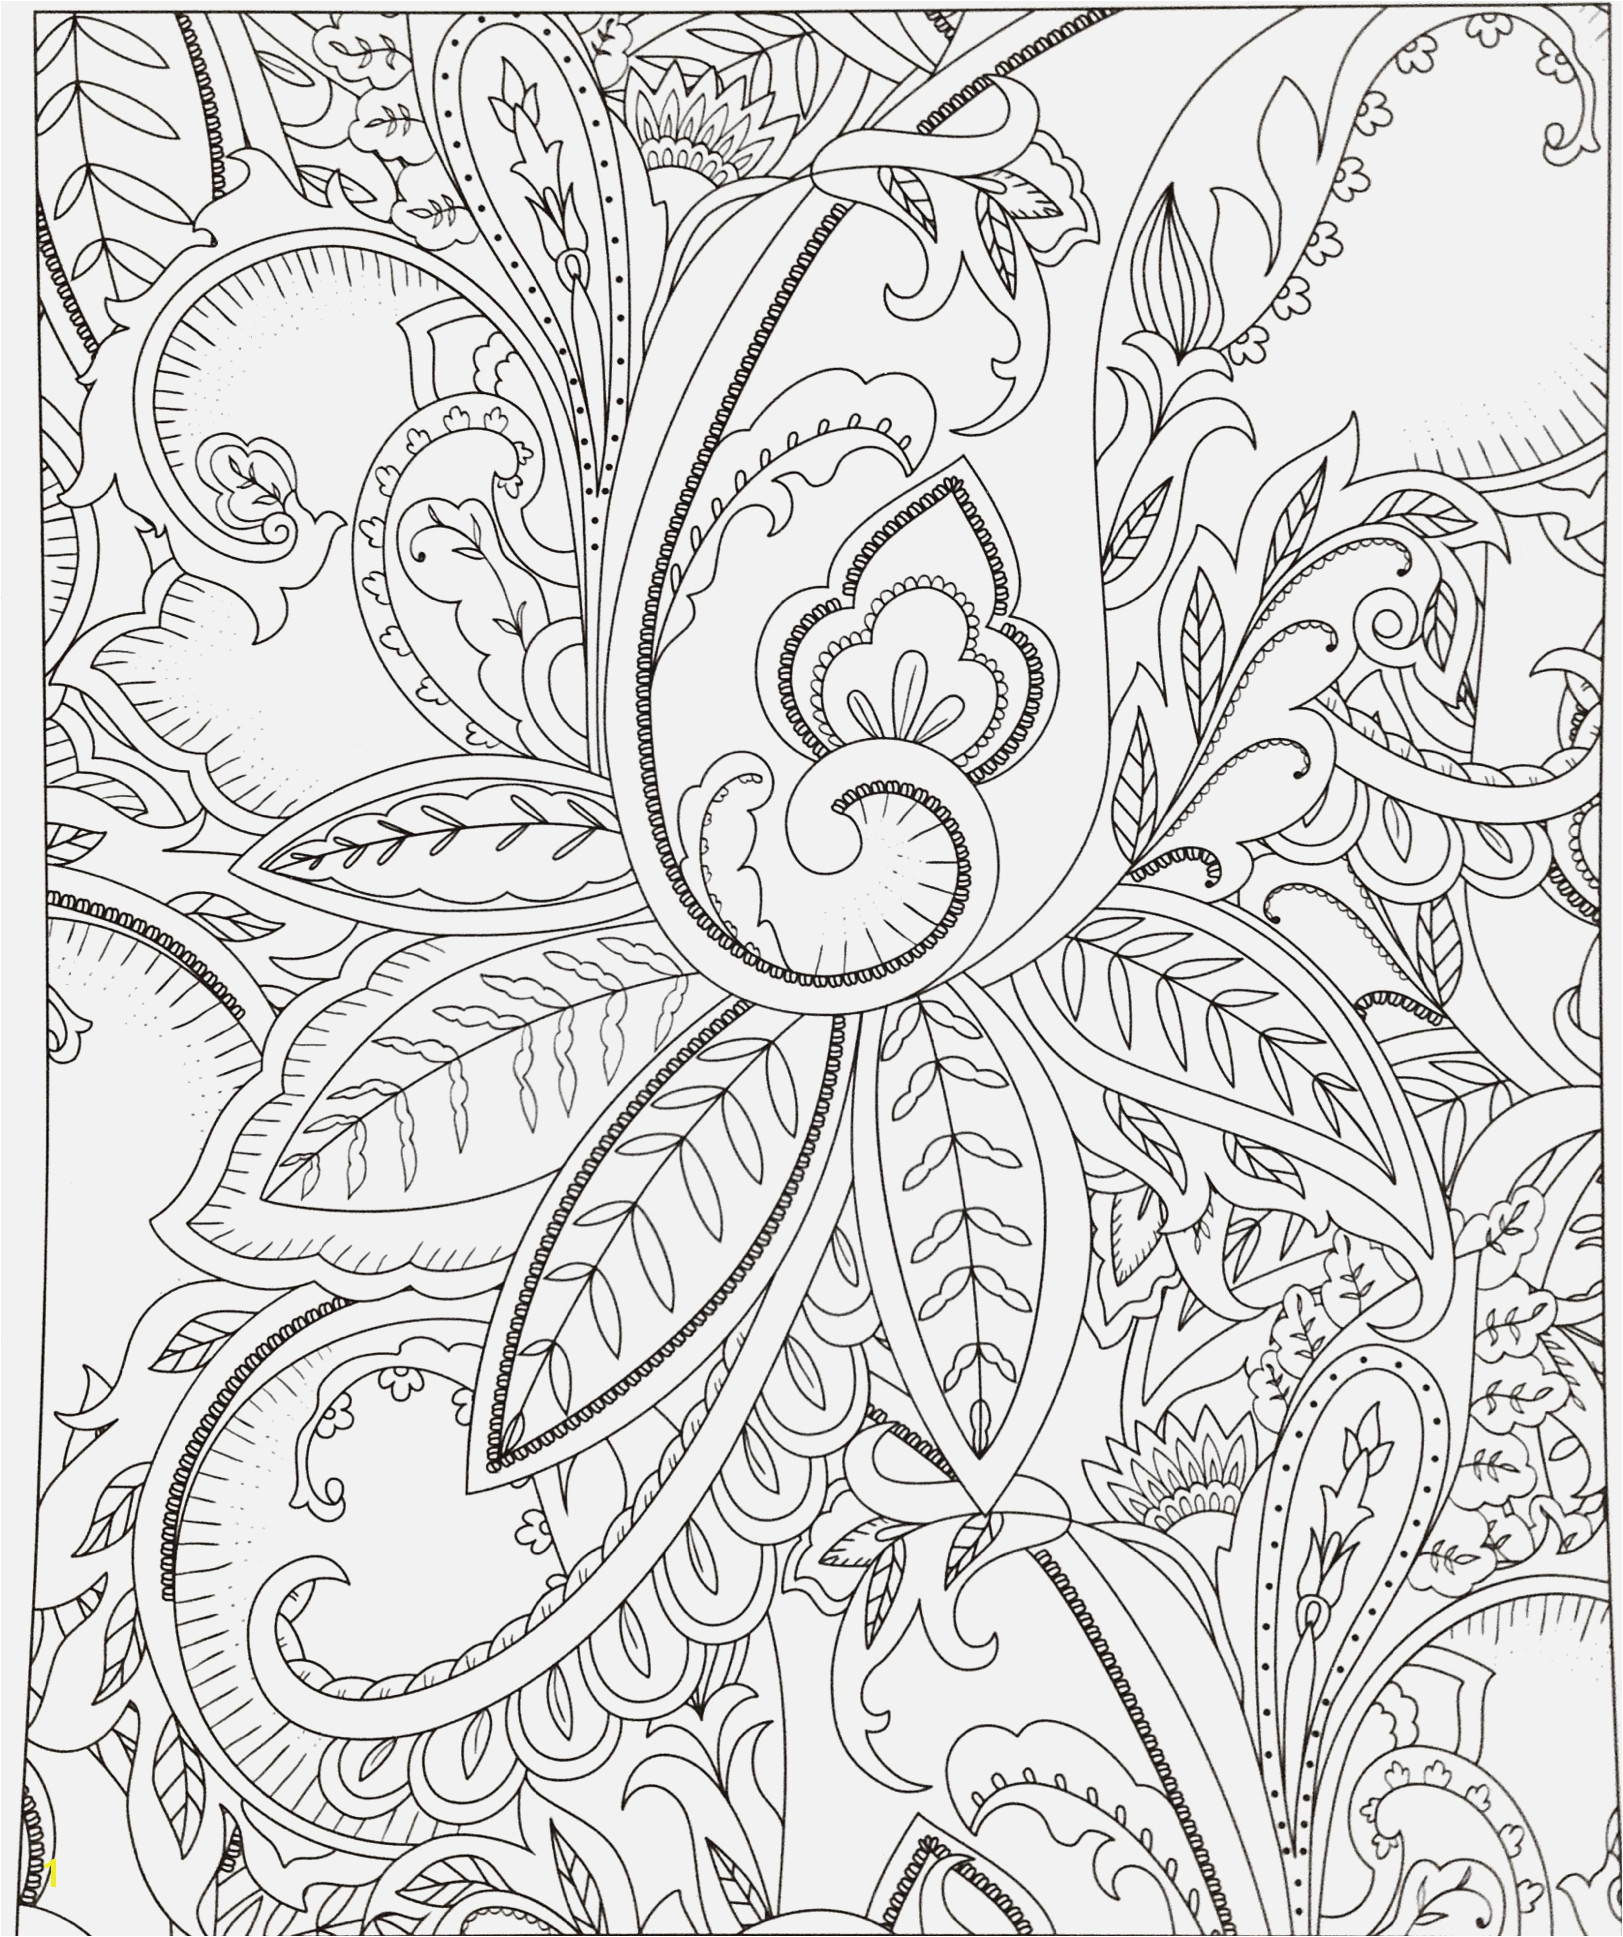 Sleeping Beauty Coloring Pages Free New Coloring Pages Printable Free Disney Coloring Pages Download